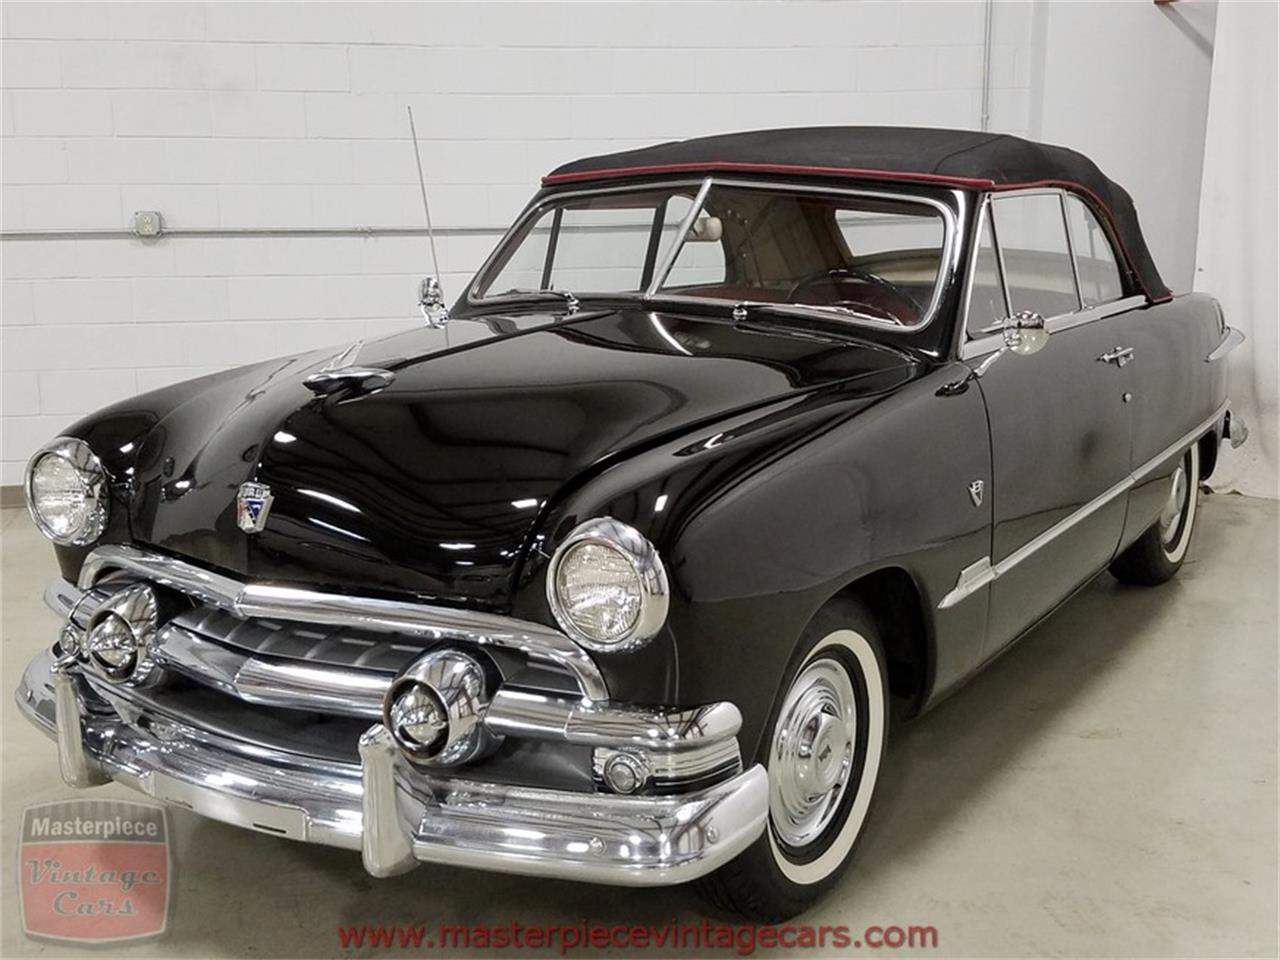 Large Picture of 1951 Ford Convertible located in Whiteland Indiana - $39,900.00 Offered by Masterpiece Vintage Cars - KAMX